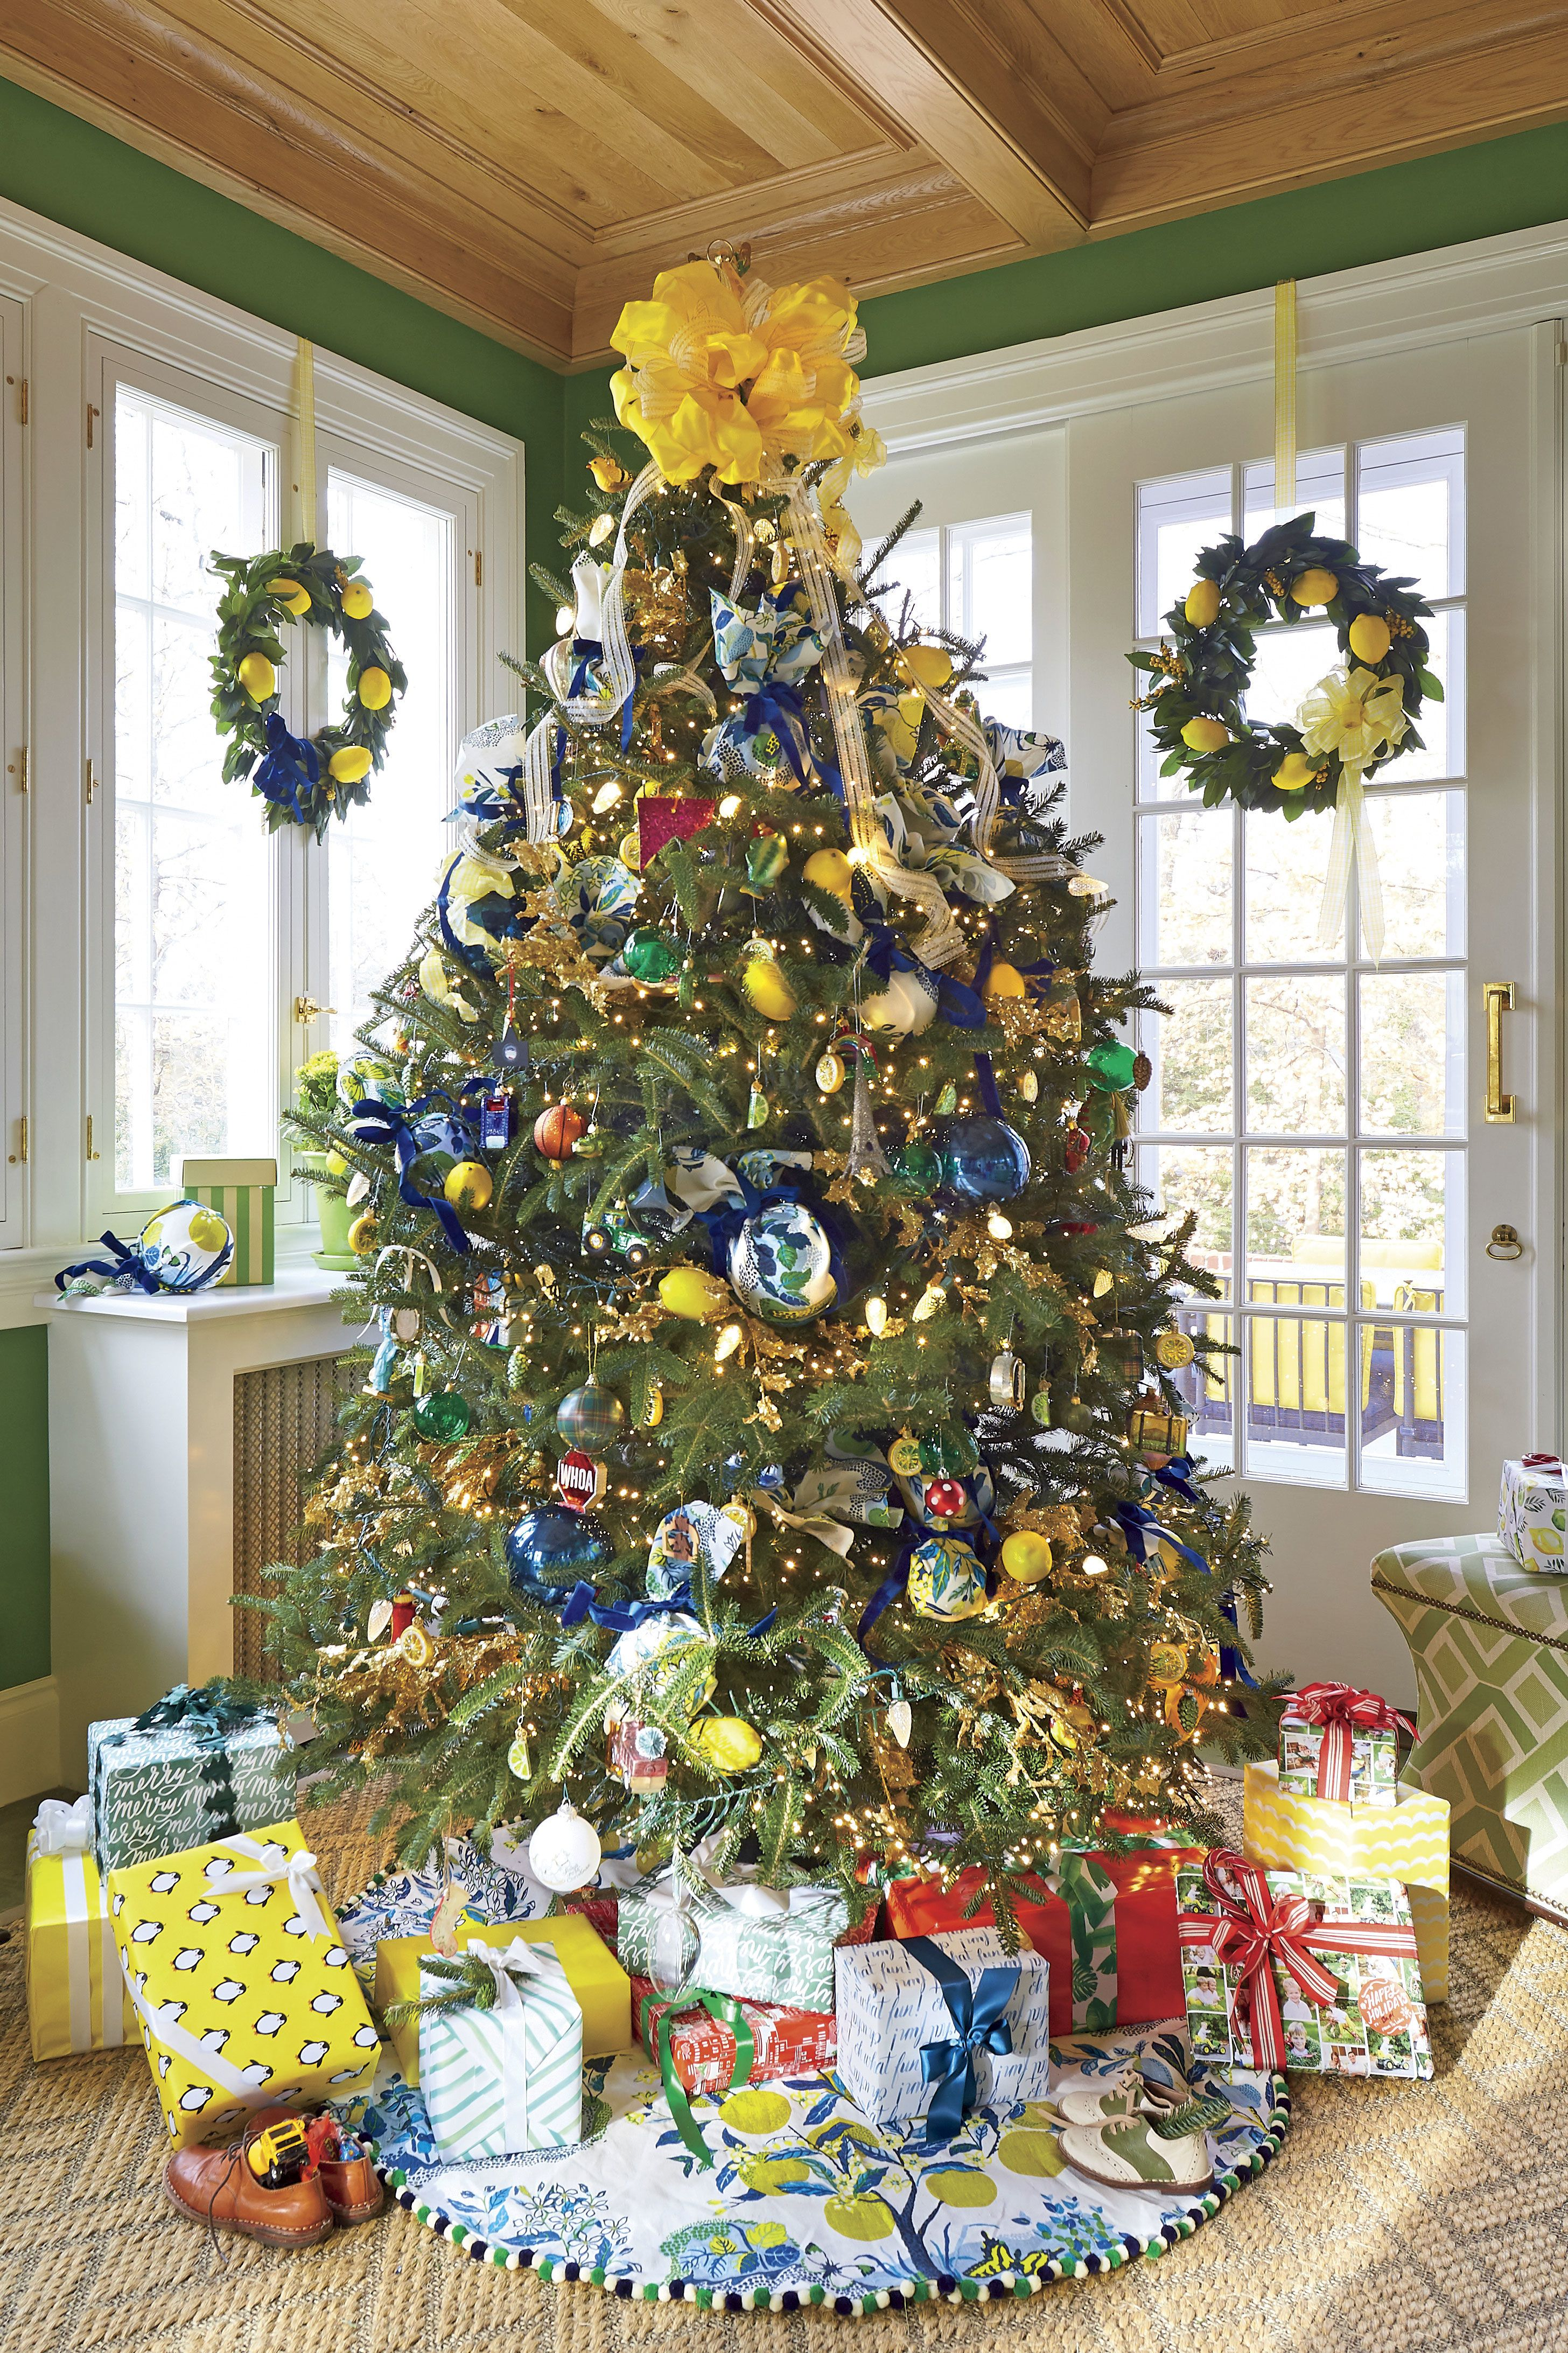 Charlottesville Christmas 2019 You Must See This Colorful Home Bursting With Christmas Cheer